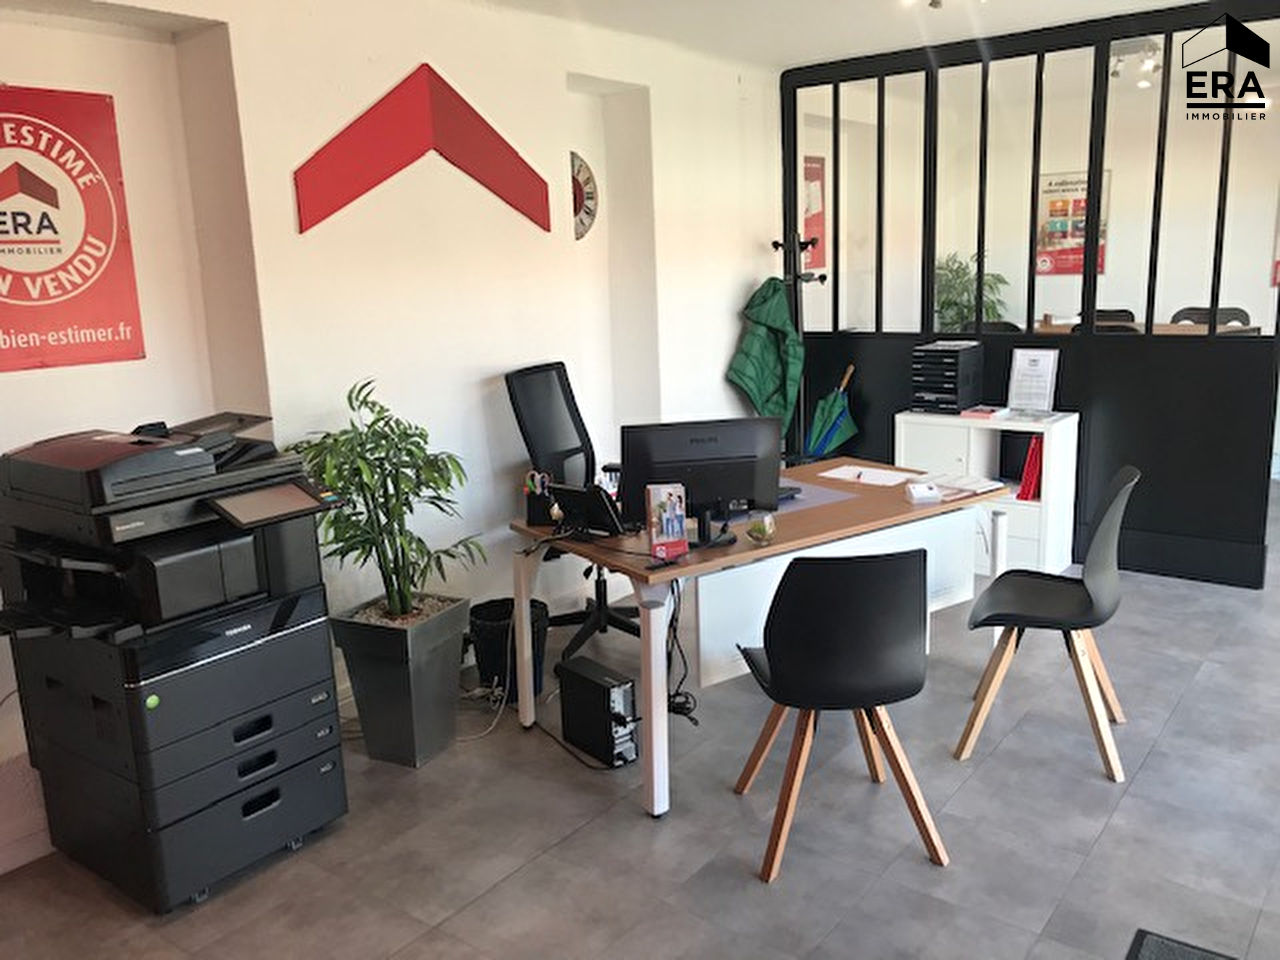 Appartement de type P4 de 100 m² avec son jardin privatif de 190 m² plus garage à Nîmes